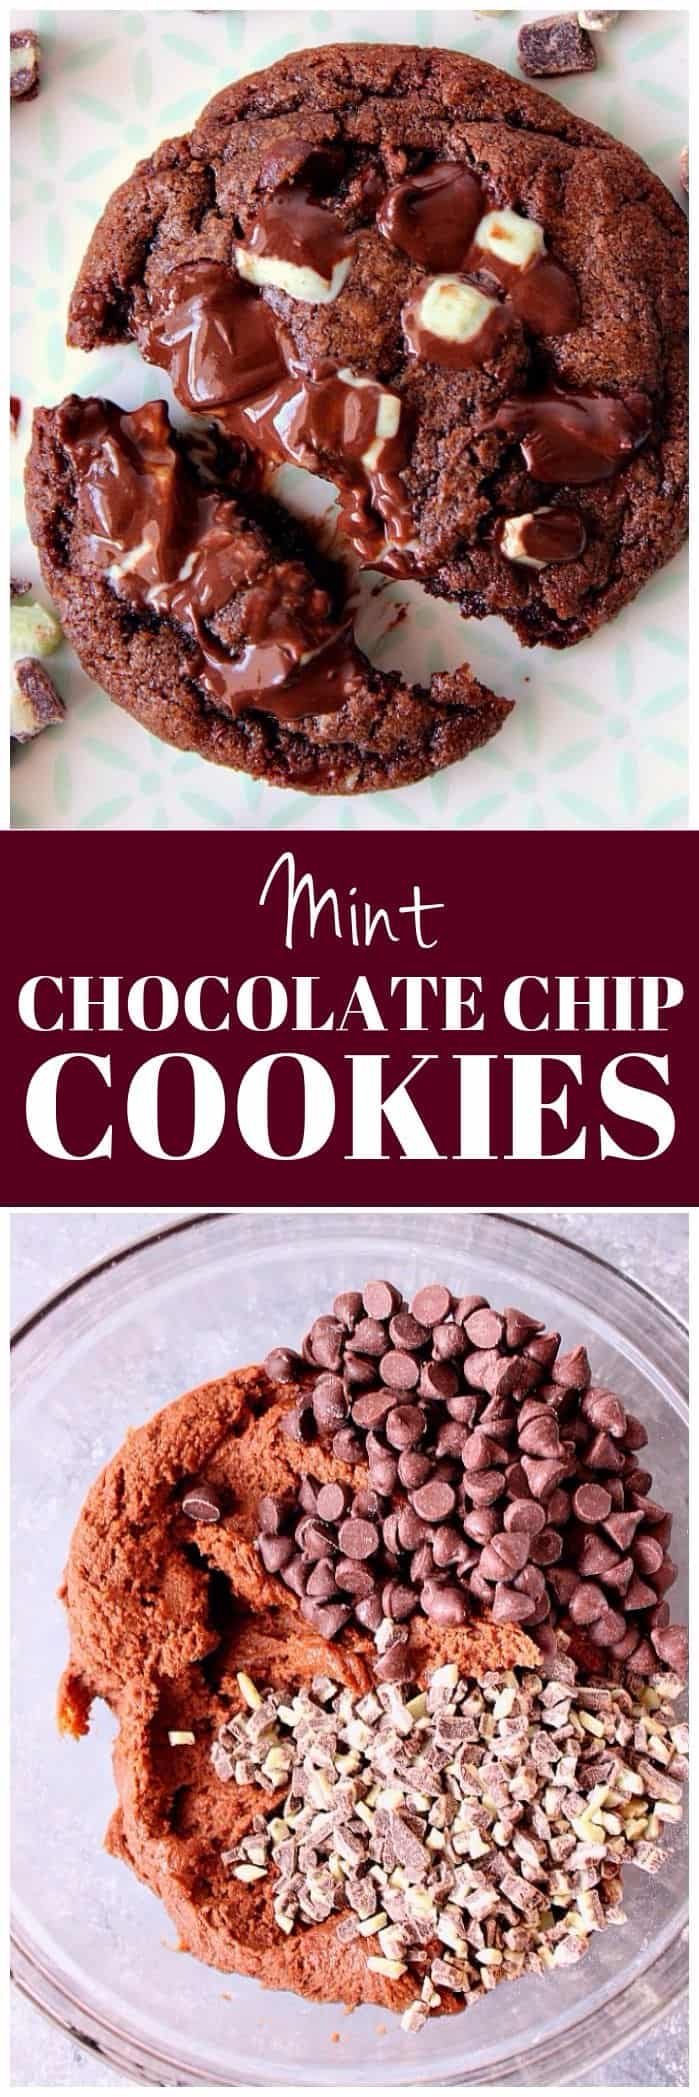 mint chocolate chip cookies recipe long1 Mint Chocolate Chip Cookies Recipe